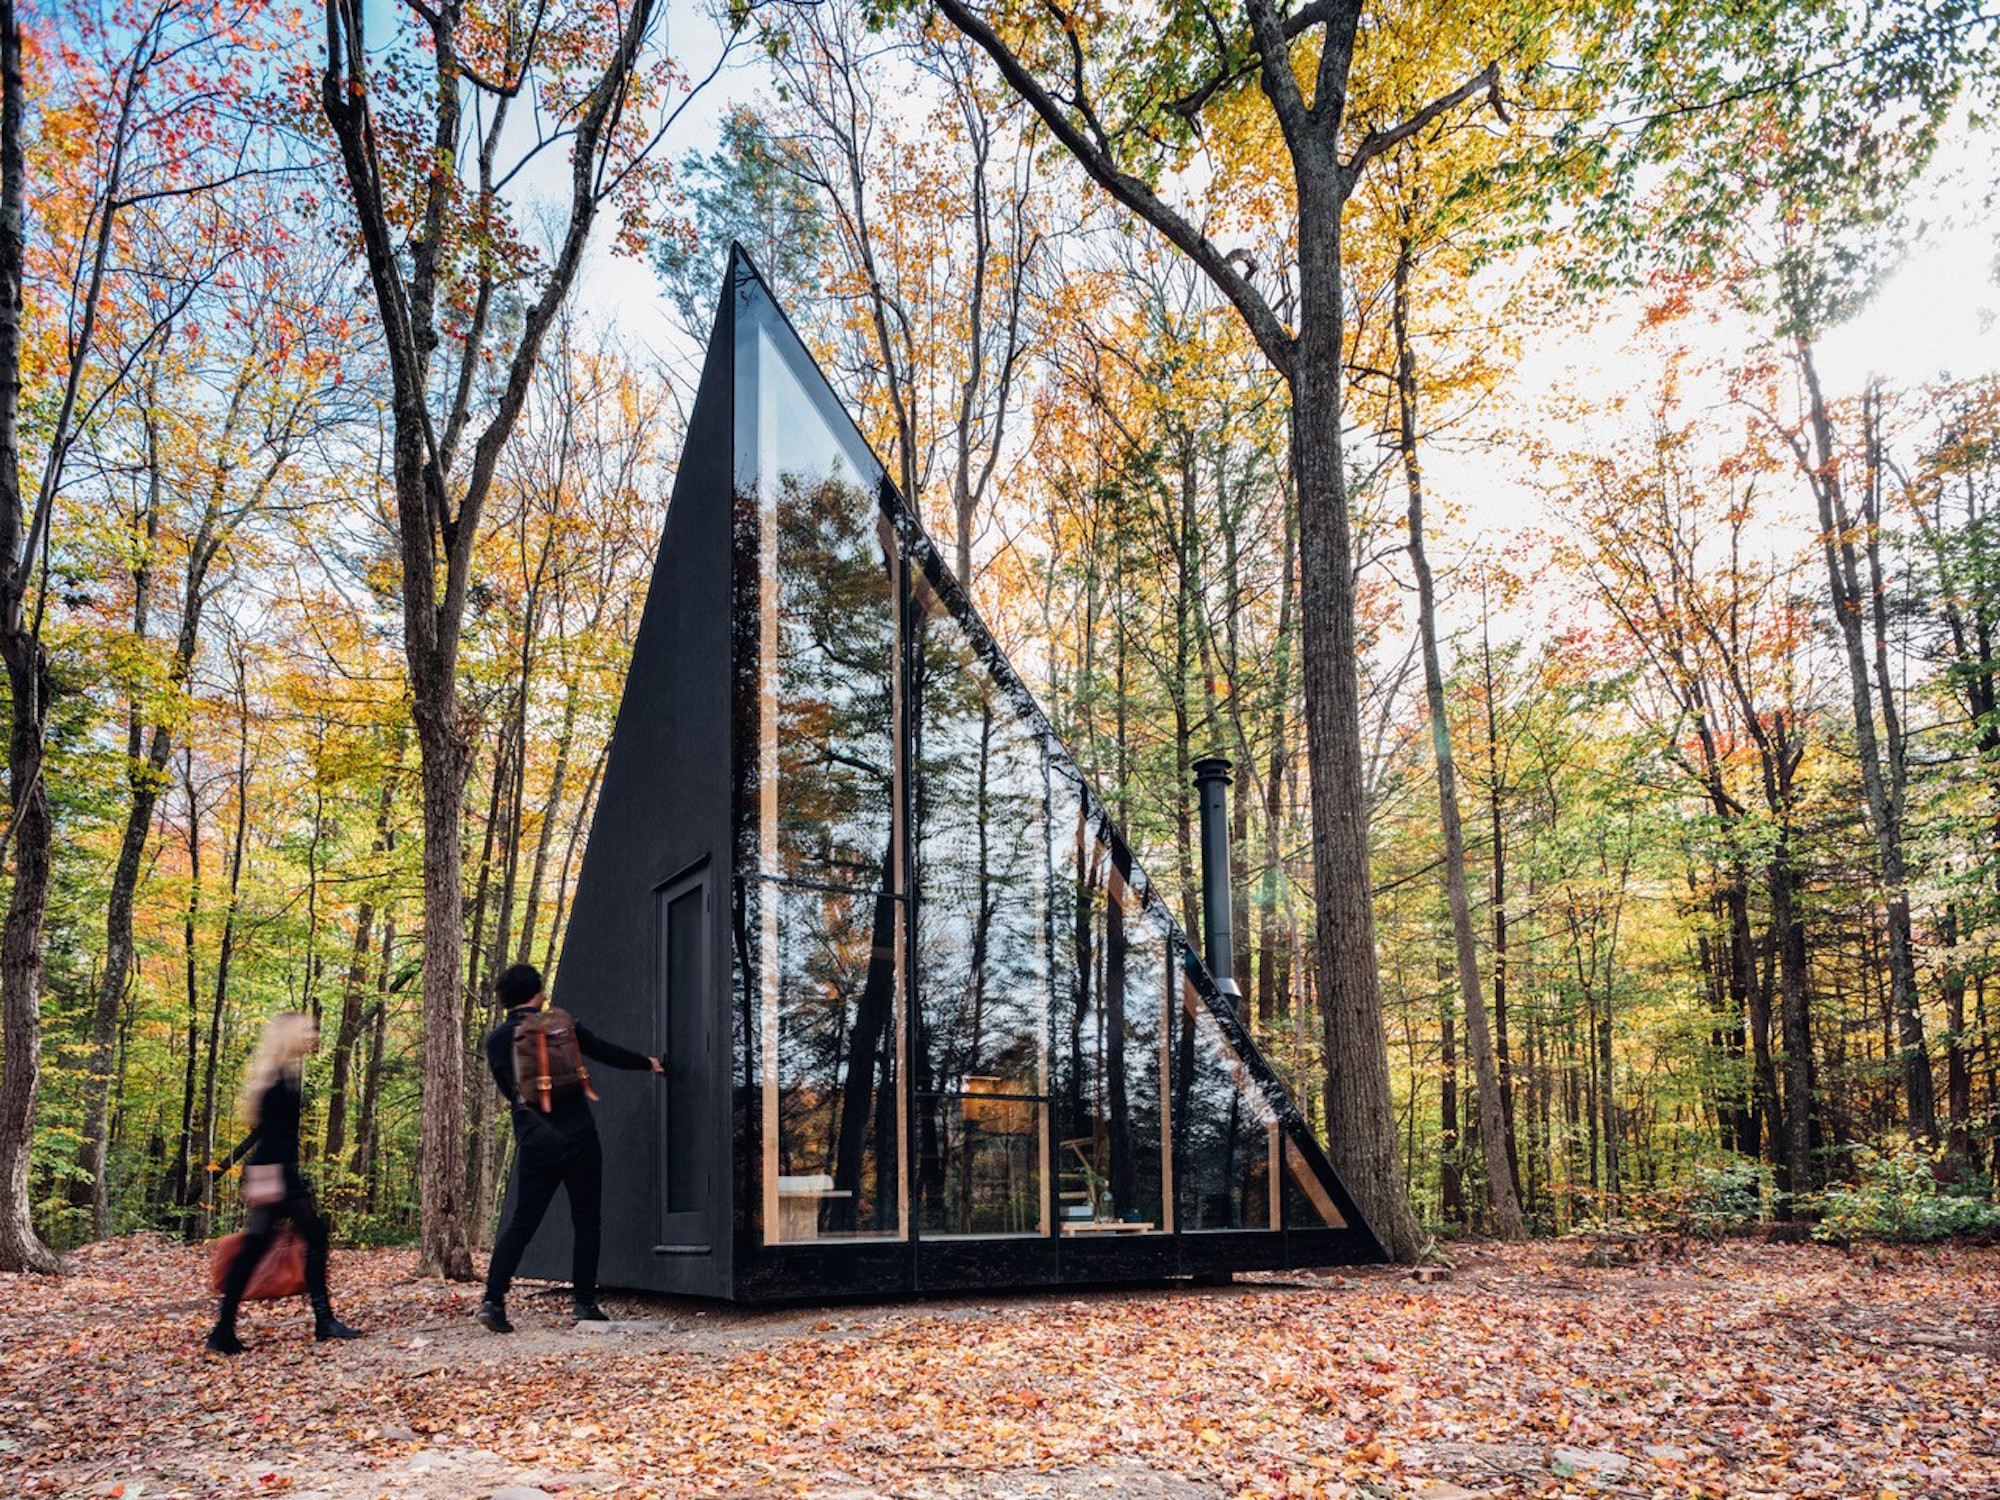 Stupendous Prefab Tiny House Designed By Bjarke Ingels Inspired By A Download Free Architecture Designs Scobabritishbridgeorg